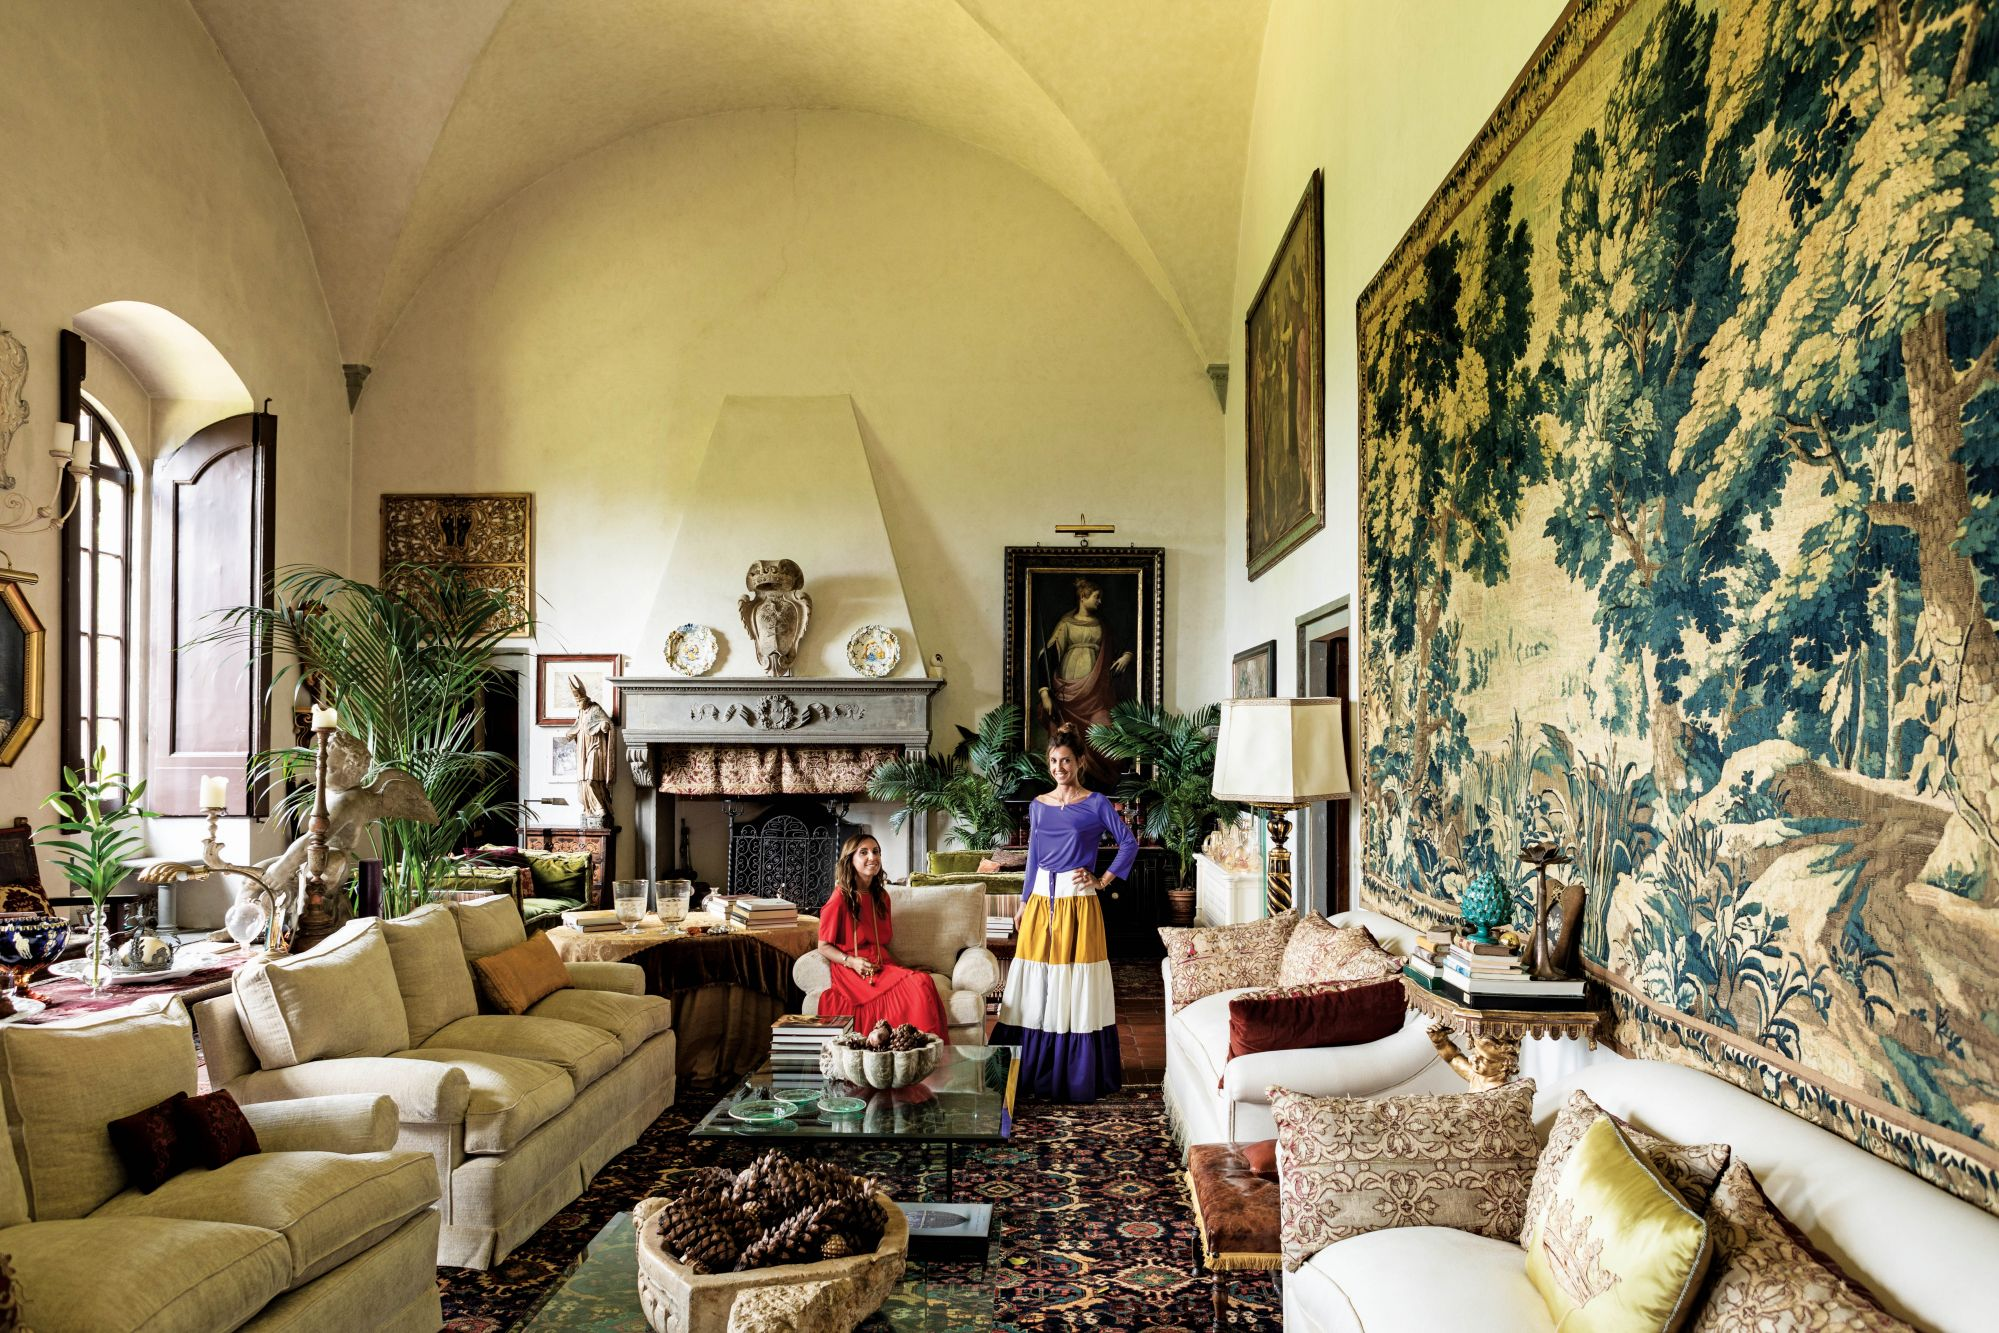 Home Tour: Villa Lo Strozzino, A Historic 15th-century Property of Fagioli Sisters in Florence